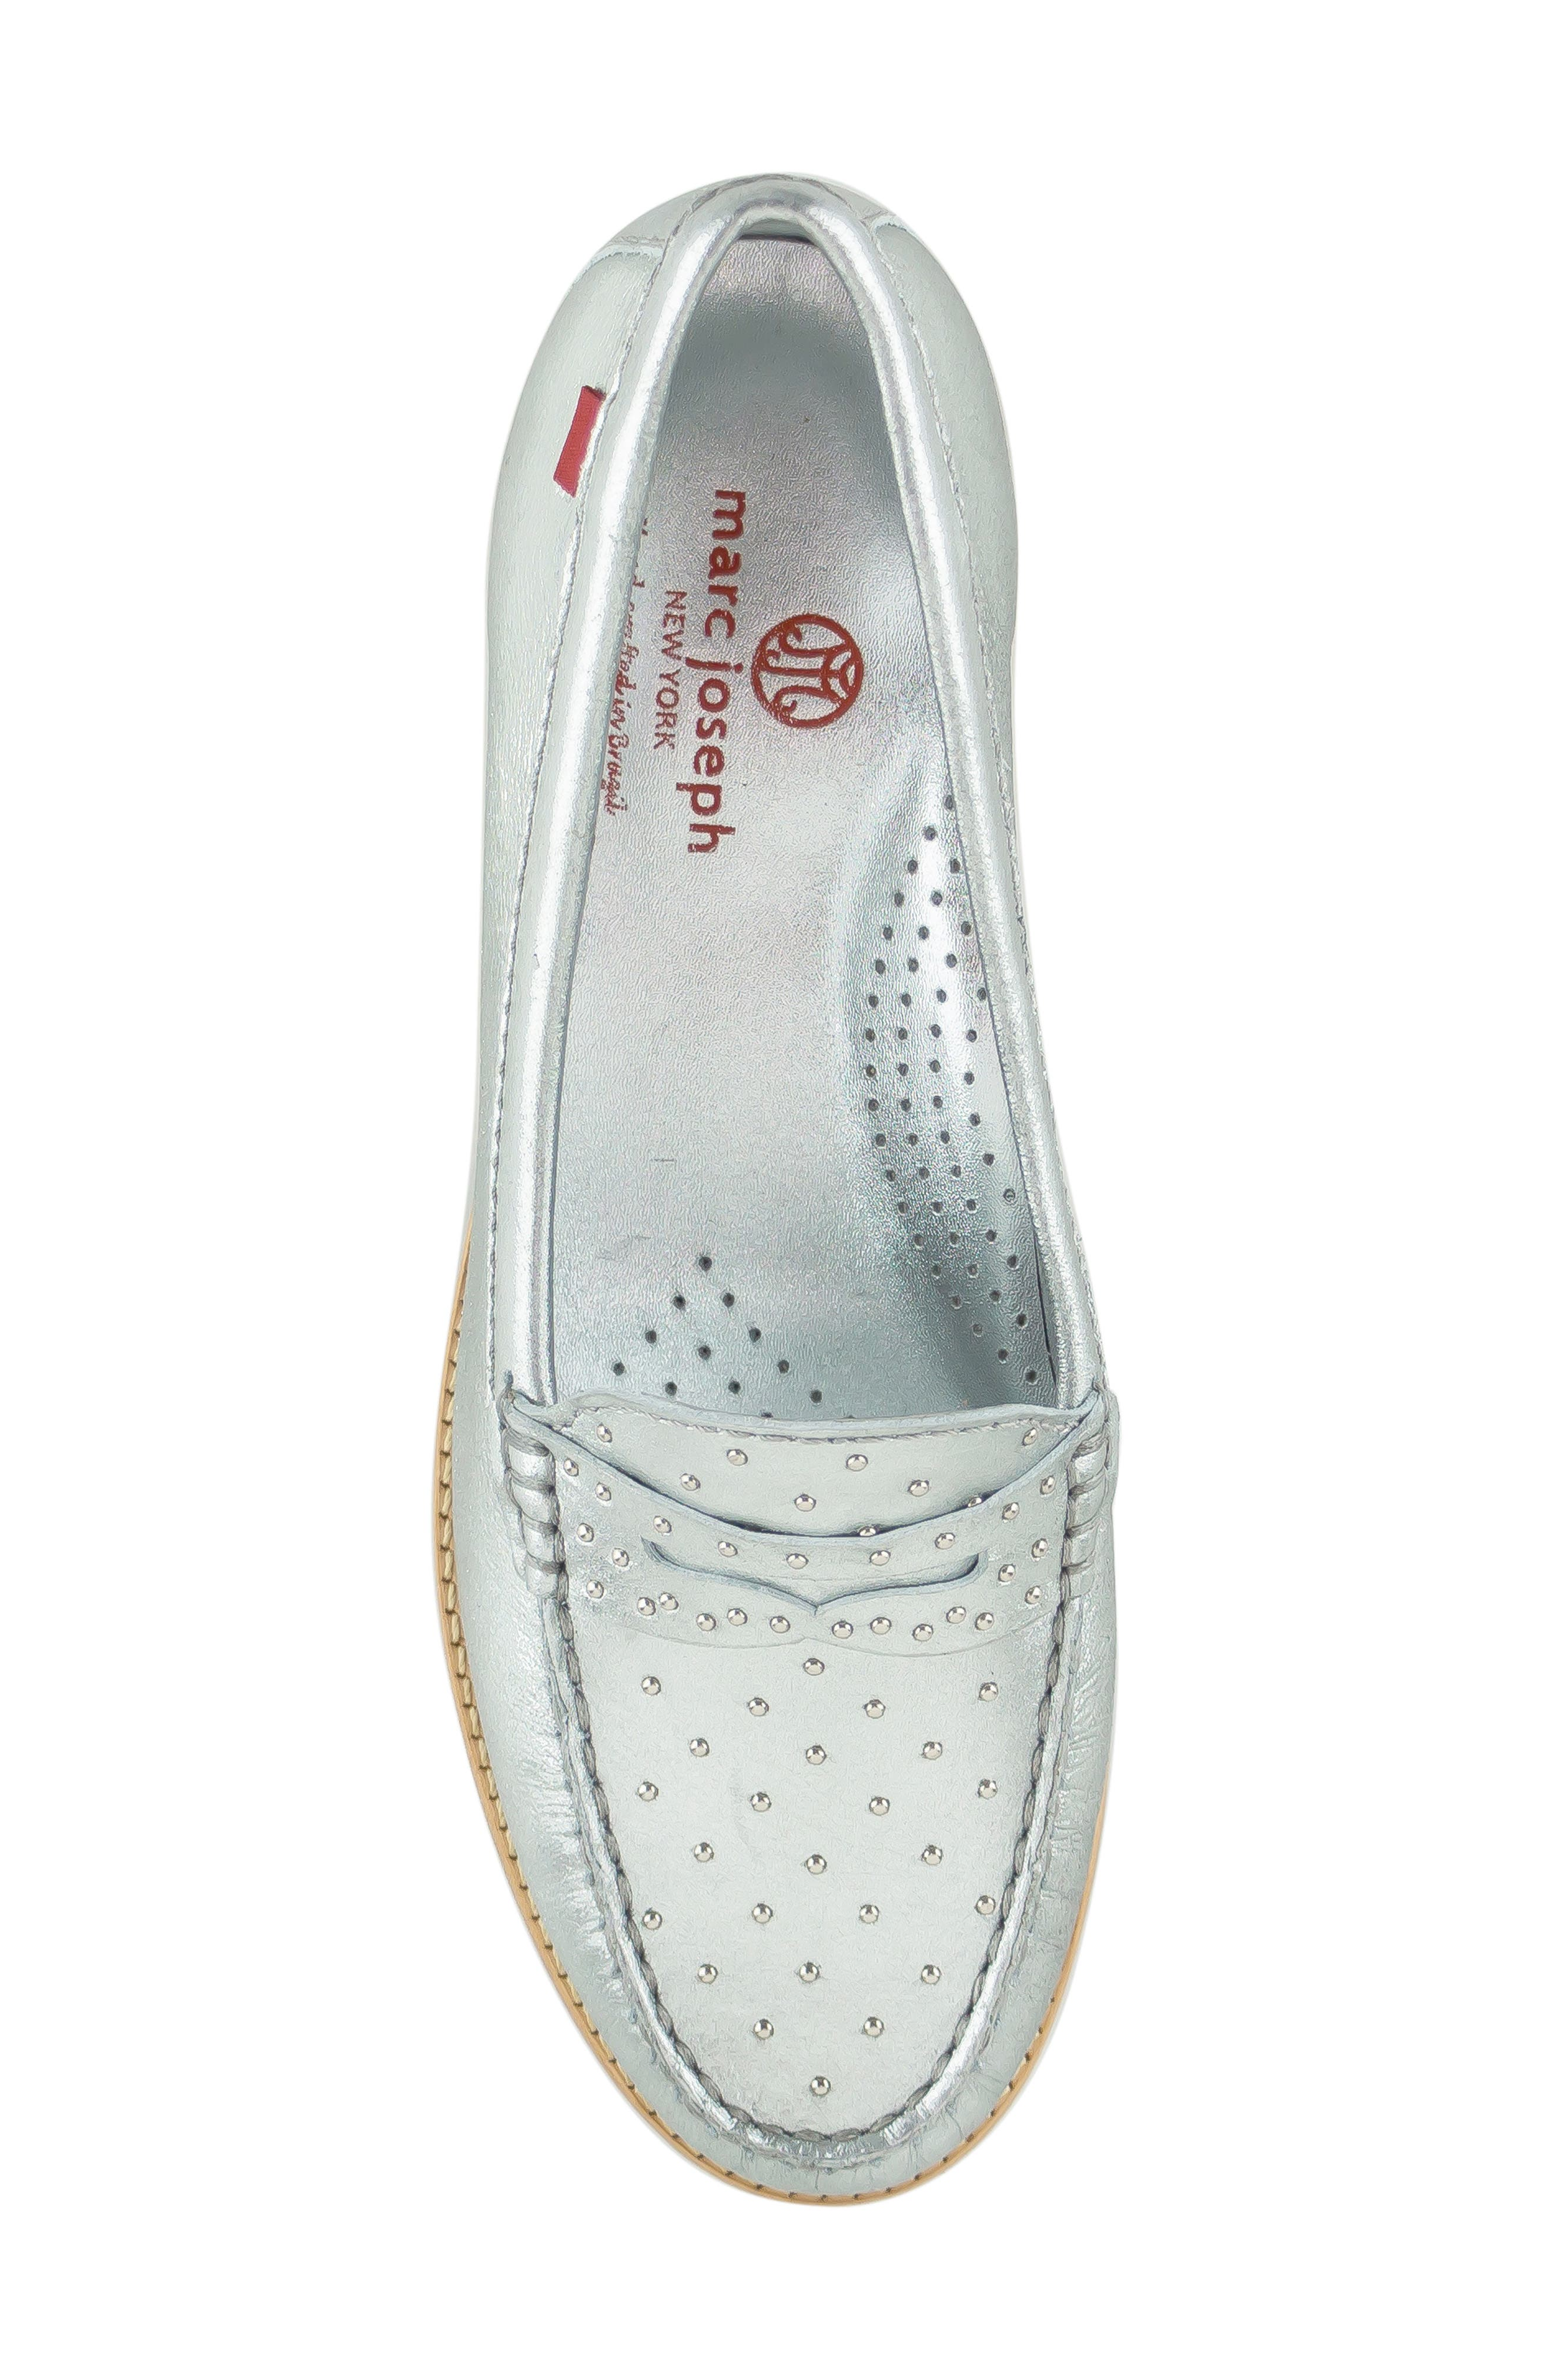 MARC JOSEPH NEW YORK, East Village III Studded Loafer, Alternate thumbnail 5, color, SILVER LEATHER